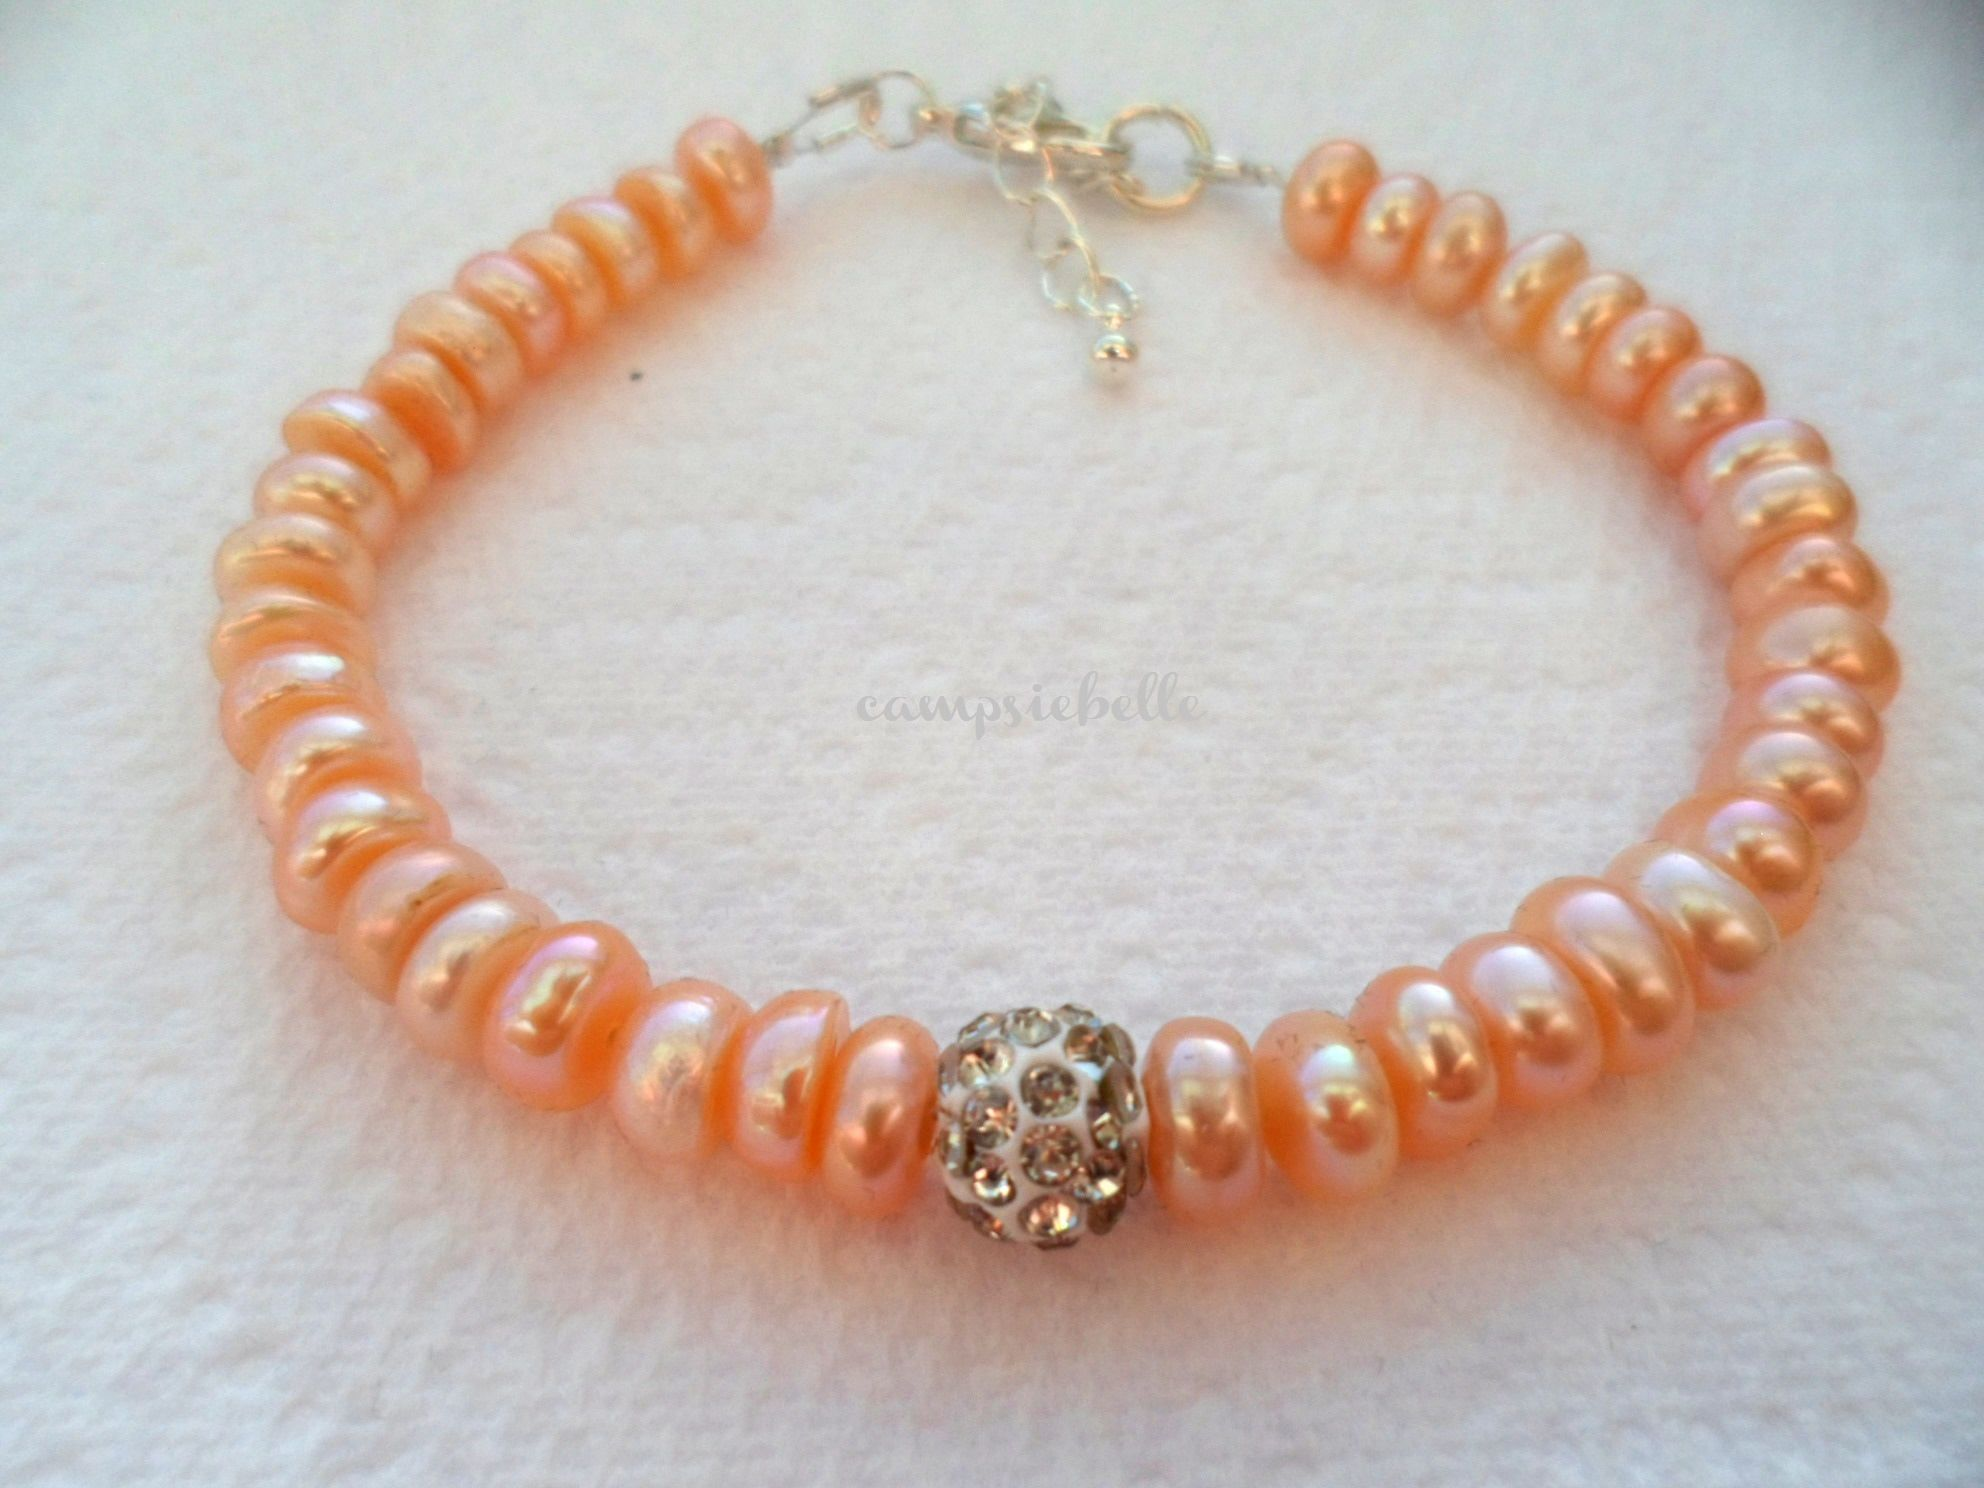 and pearl bridesmaids friends design bracelet jewellery freshwater ps gift shop with love